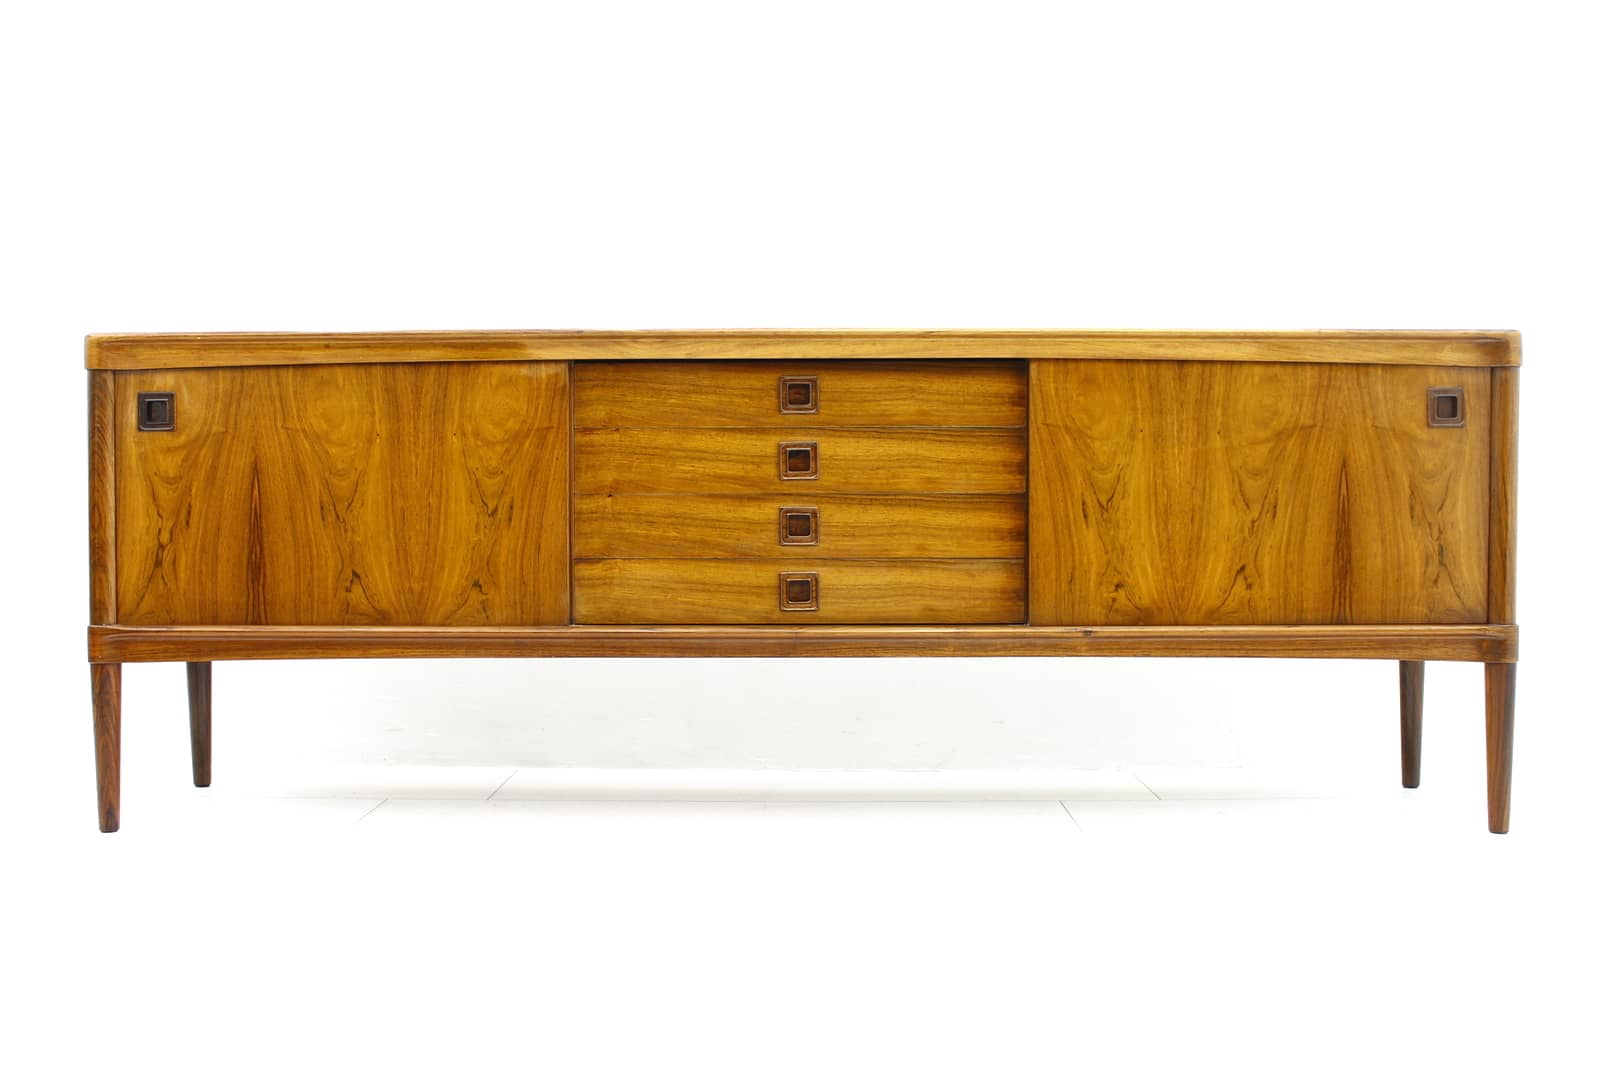 Rosewood Sideboard by H.W Klein for Bramin, Denmark